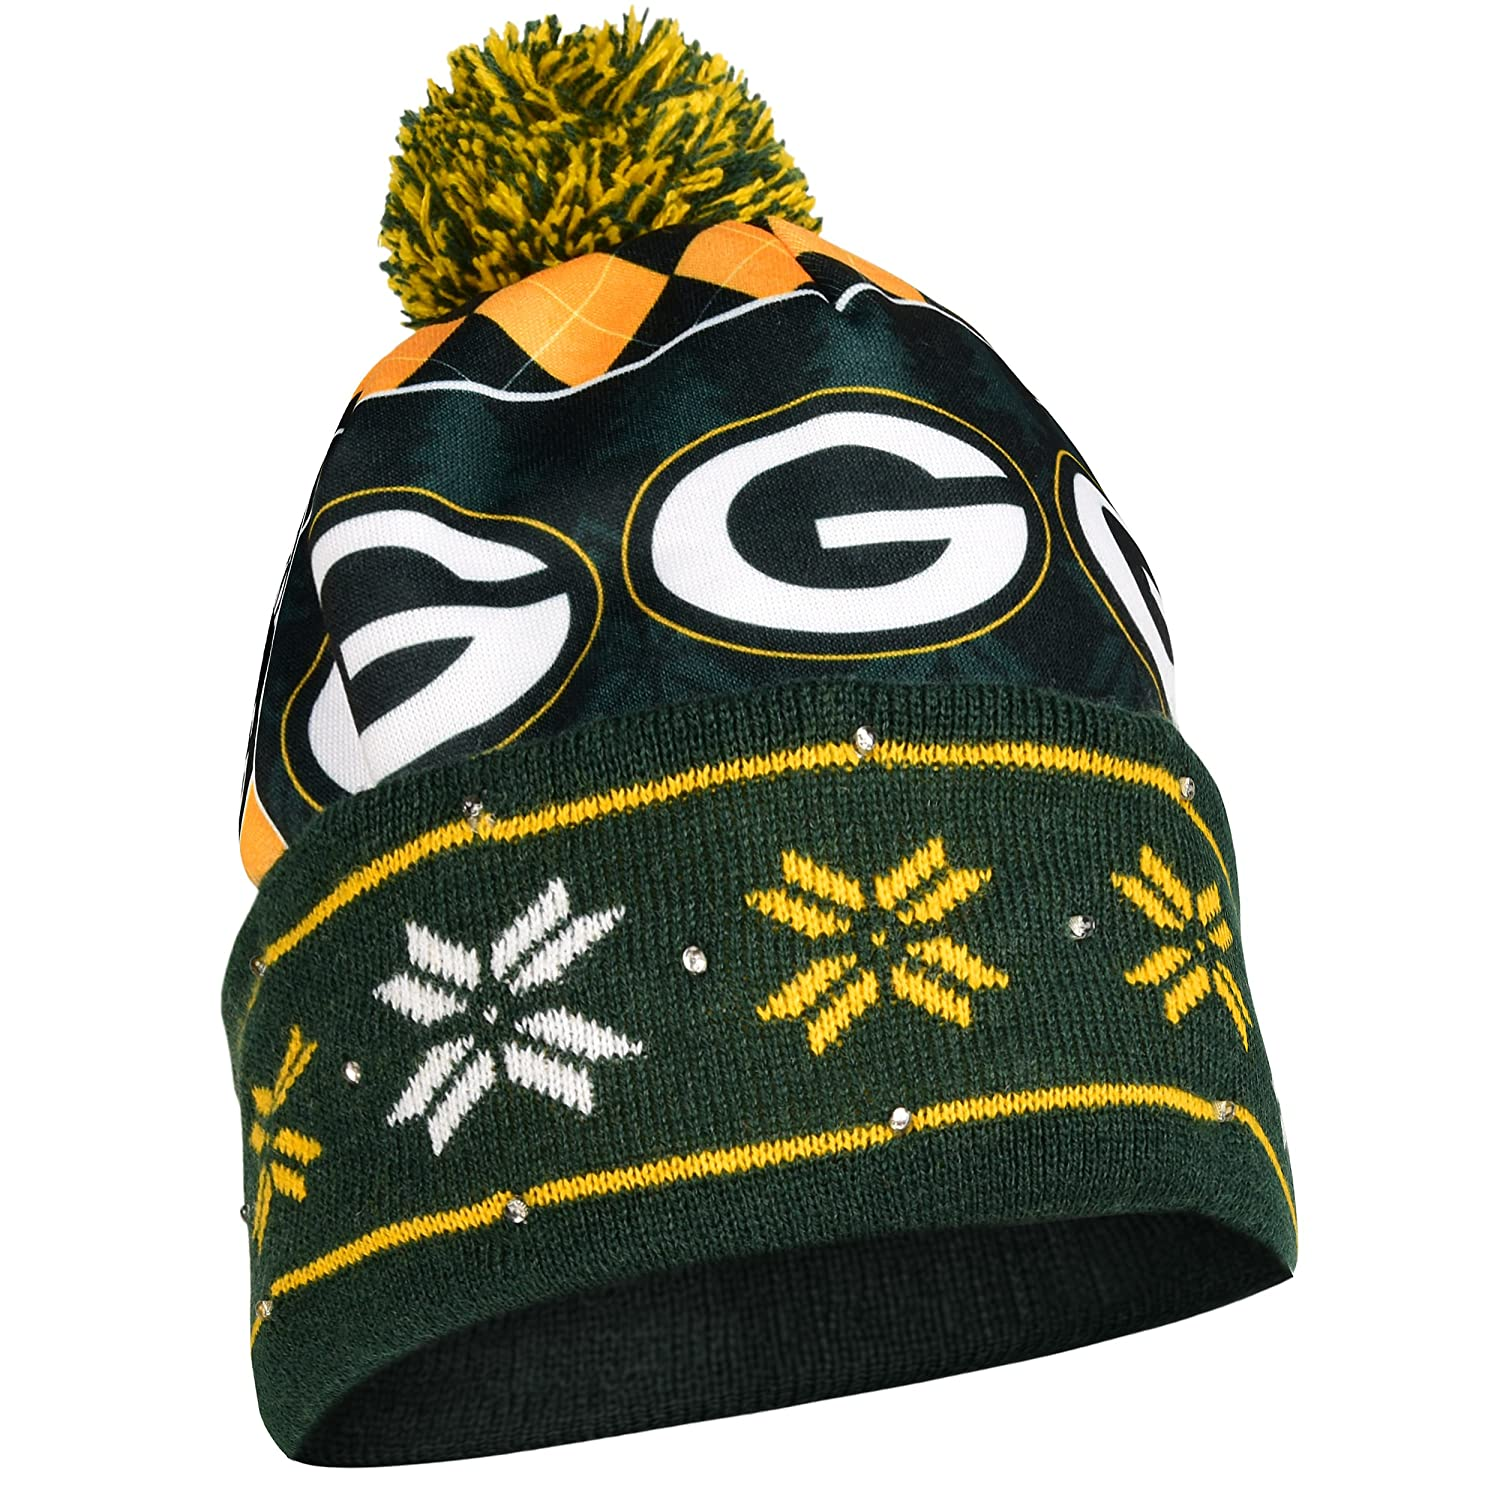 Green Bay Packers Exclusive Busy Block Printed Light Up Beanie